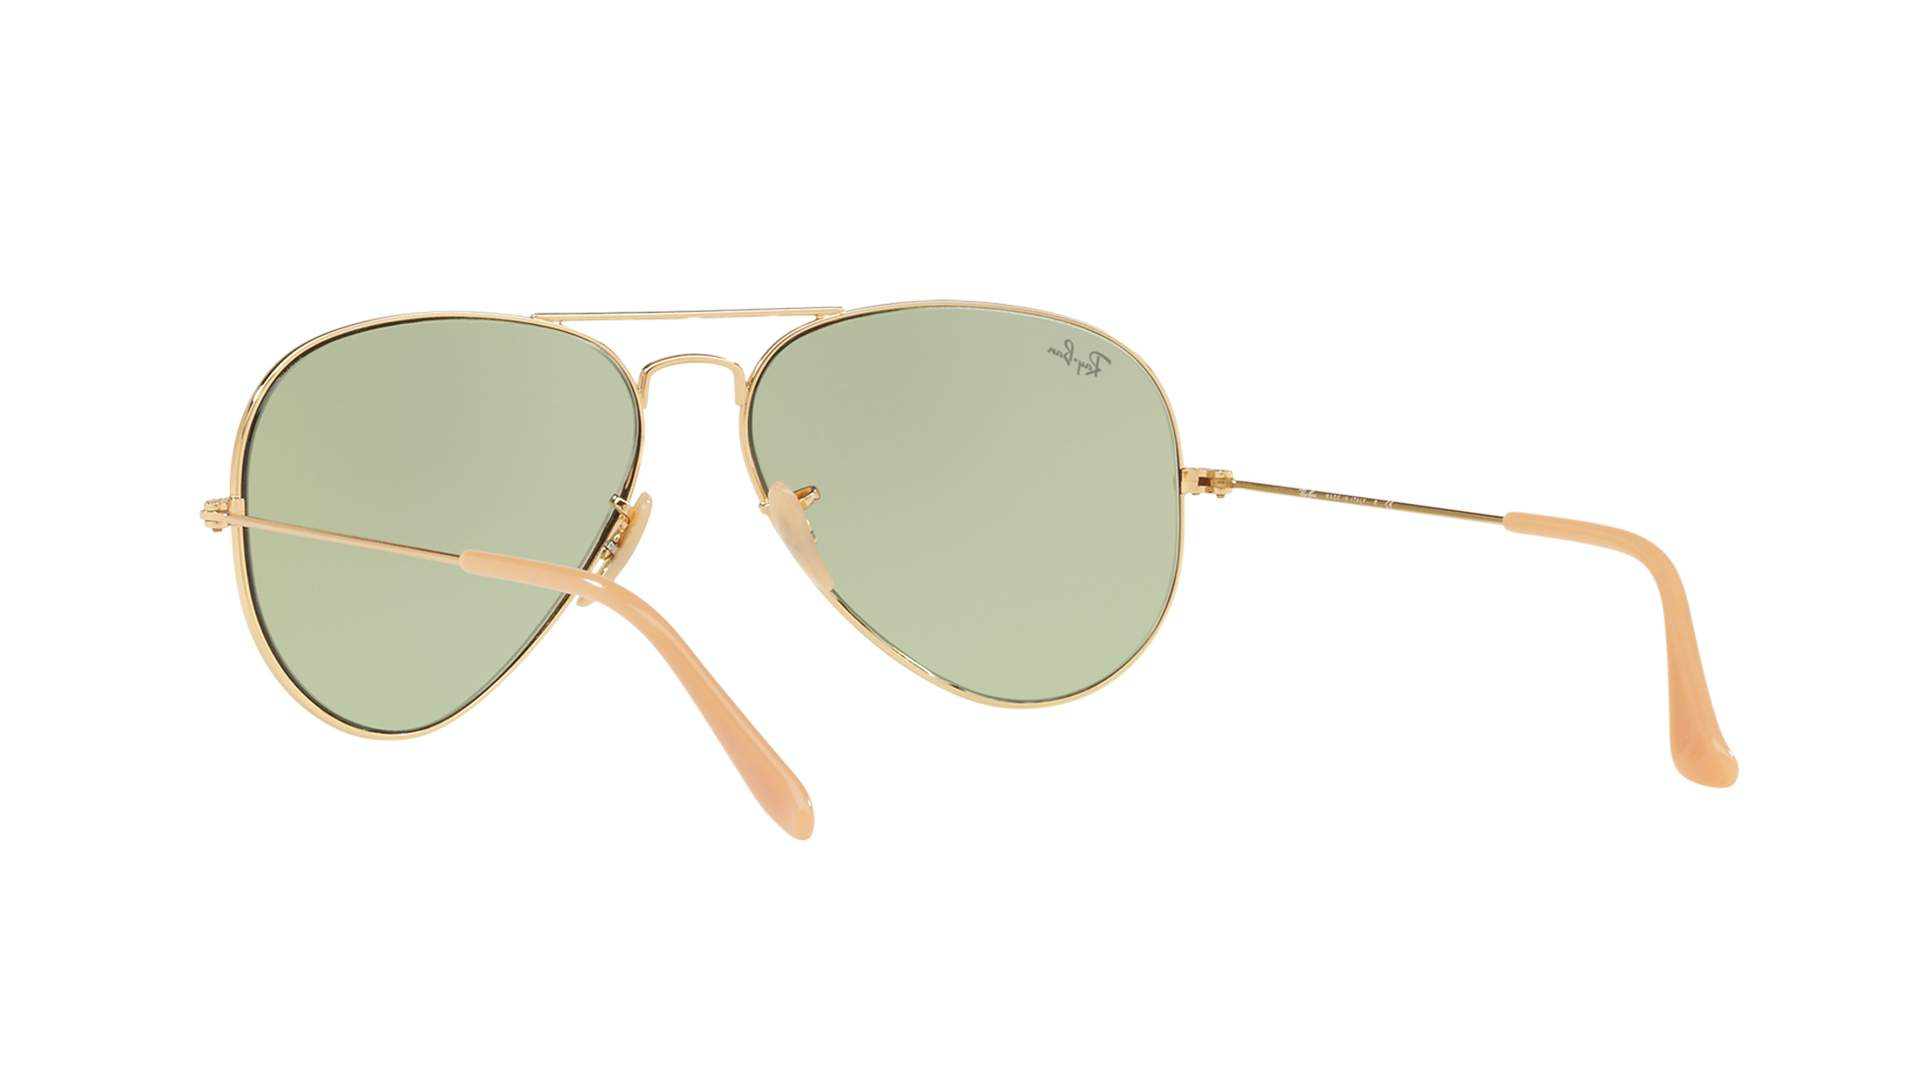 Sunglasses Ray-Ban Aviator Evolve Gold RB3025 9064 4C 58-14 Large  Photochromic 696fab73c68e